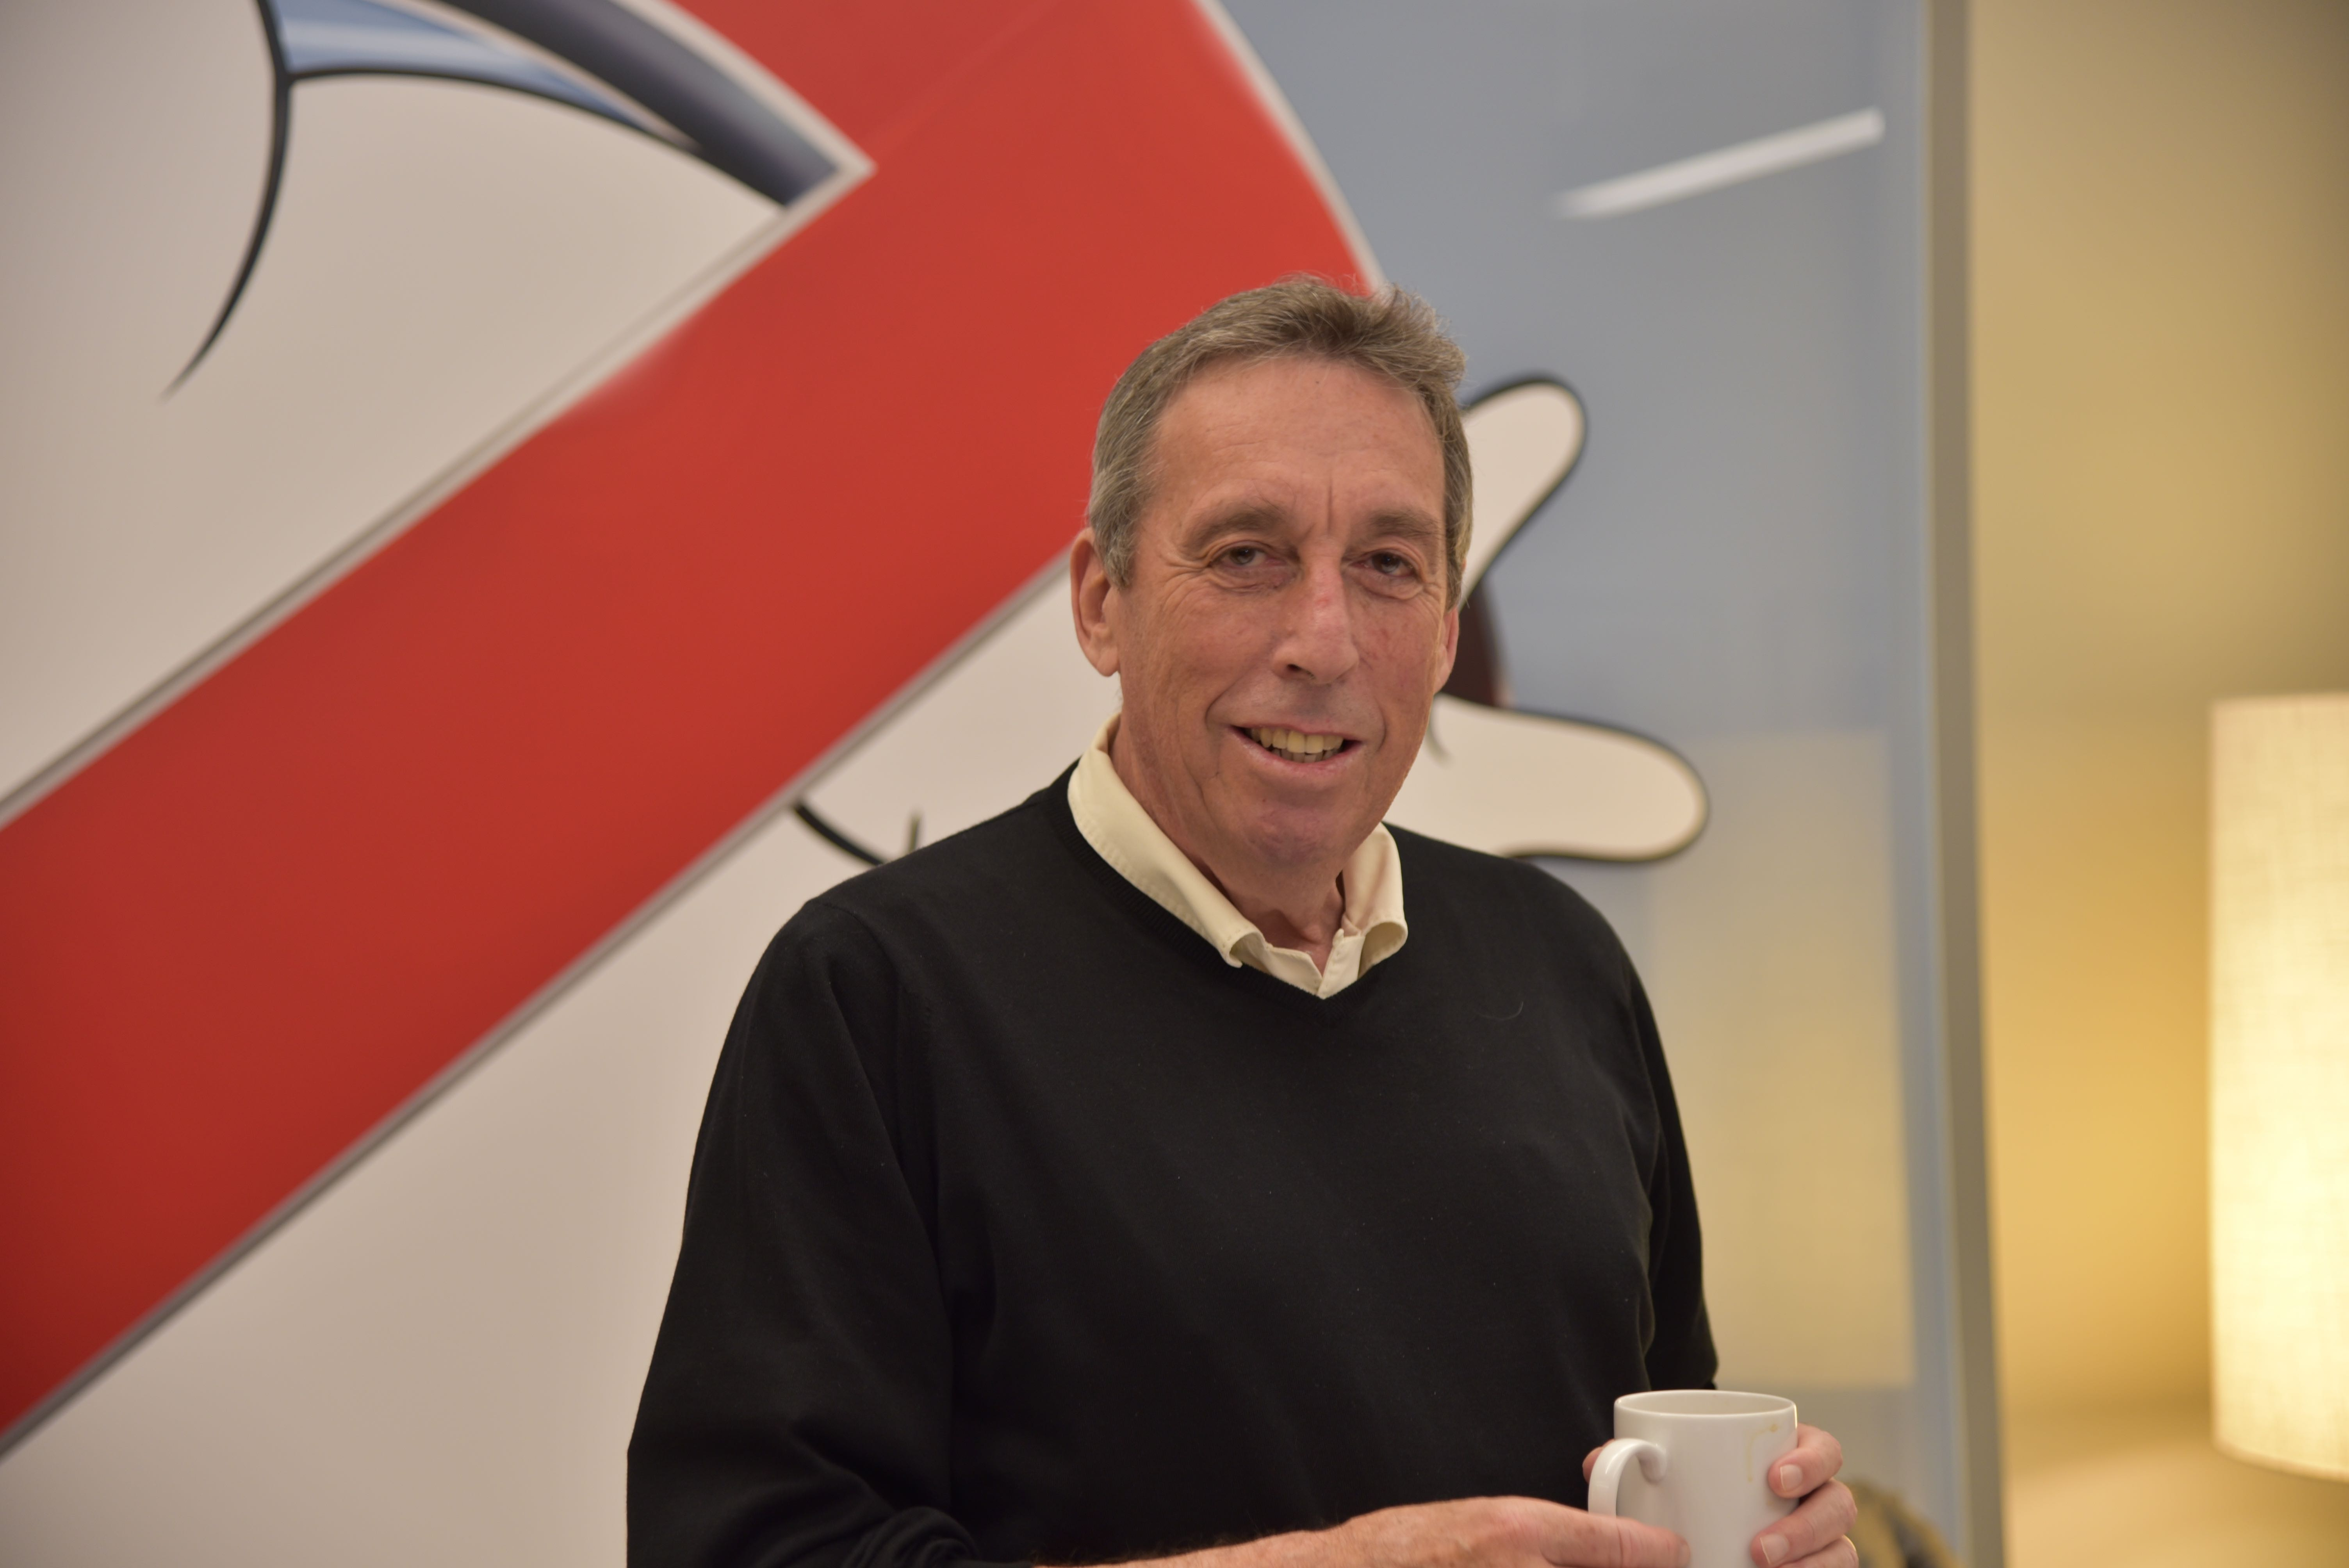 Ivan Reitman at Ghost Corps at Sony Pictures Studio in Culver City, CA